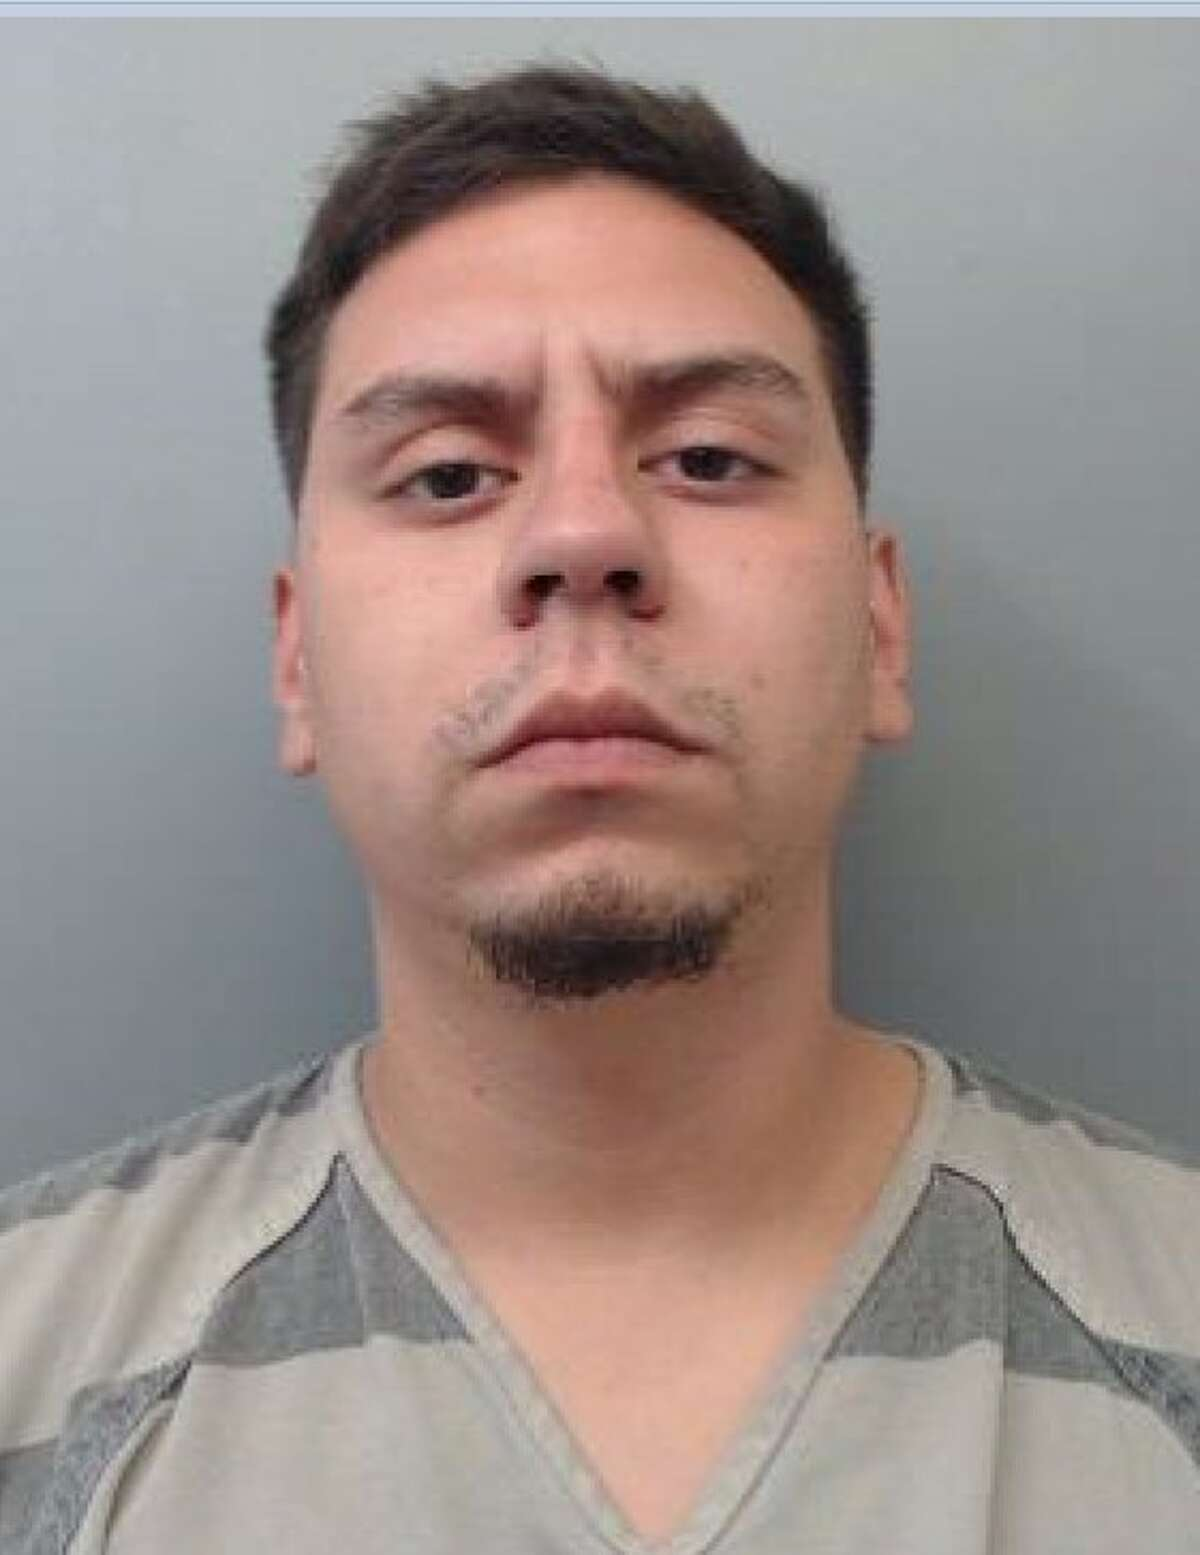 Manuel Ochoa Jr., 23, was served with an arrest warrant that charged him with aggravated assault with a deadly weapon and burglary of a habitation with intent to commit other felony.